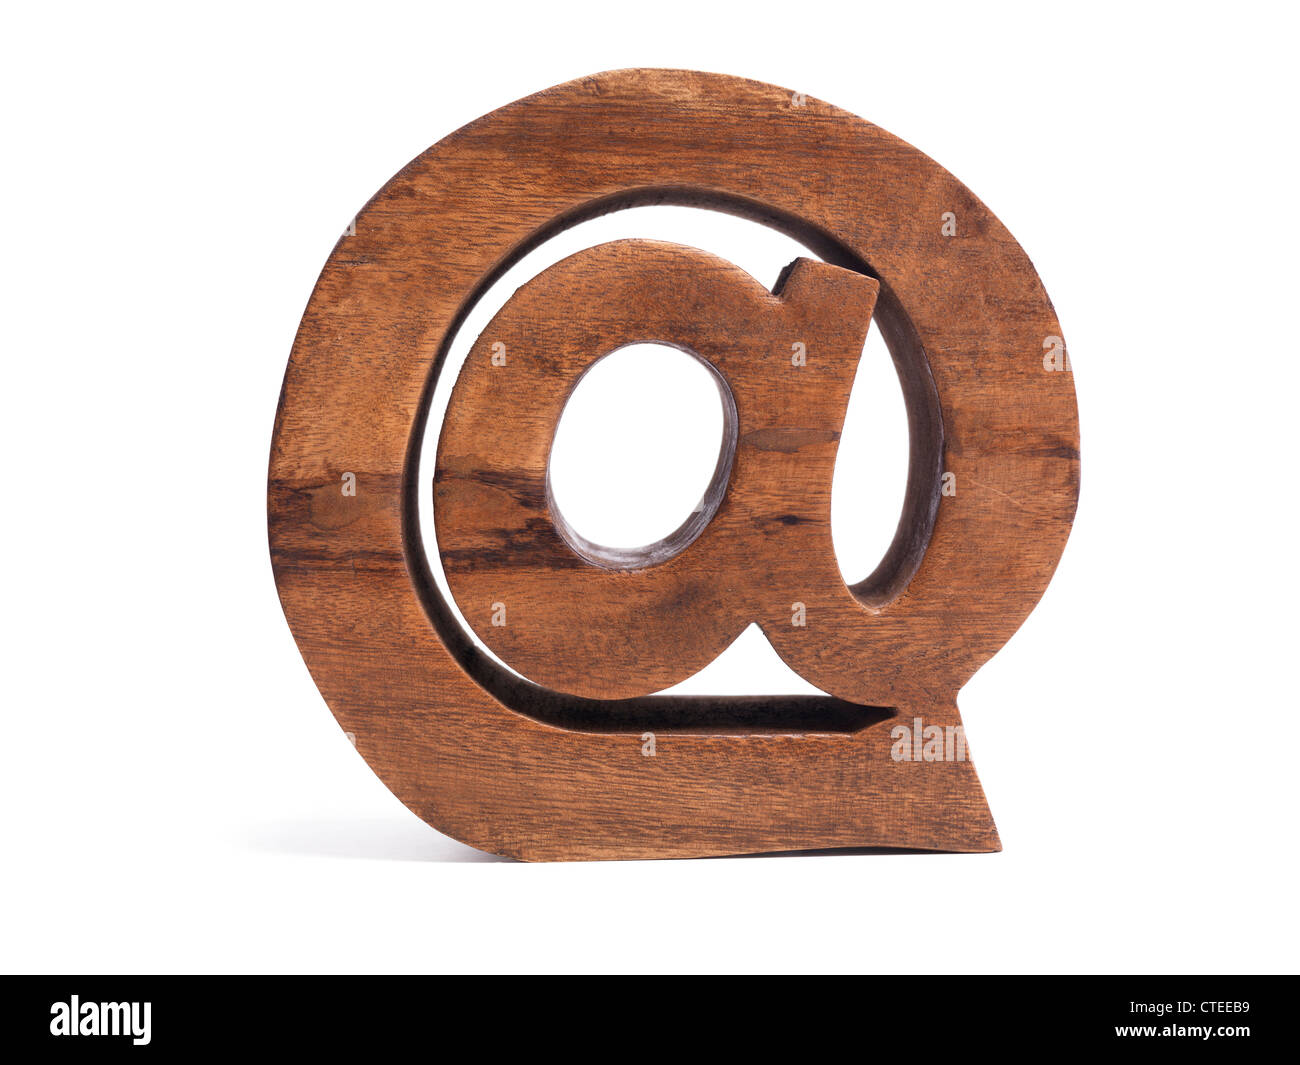 Email Symbol AT @ made of wood isolated on white background - Stock Image